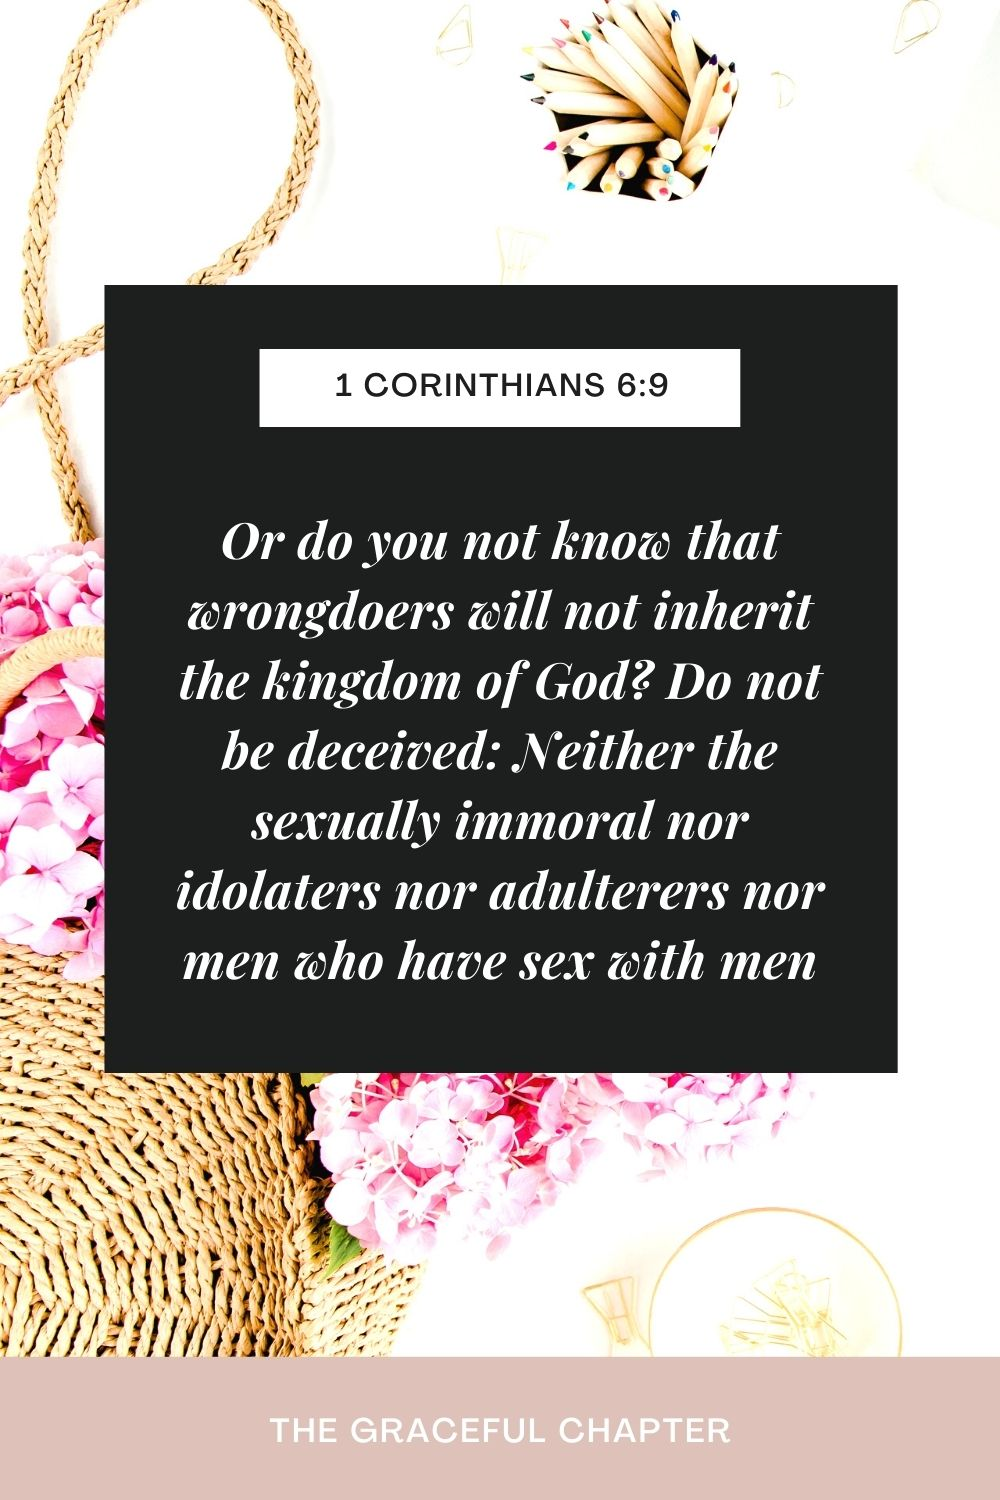 Or do you not know that wrongdoers will not inherit the kingdom of God? Do not be deceived: Neither the sexually immoral nor idolaters nor adulterers nor men who have sex with menOr do you not know that wrongdoers will not inherit the kingdom of God? Do not be deceived: Neither the sexually immoral nor idolaters nor adulterers nor men who have sex with men 1 Corinthians 6:9